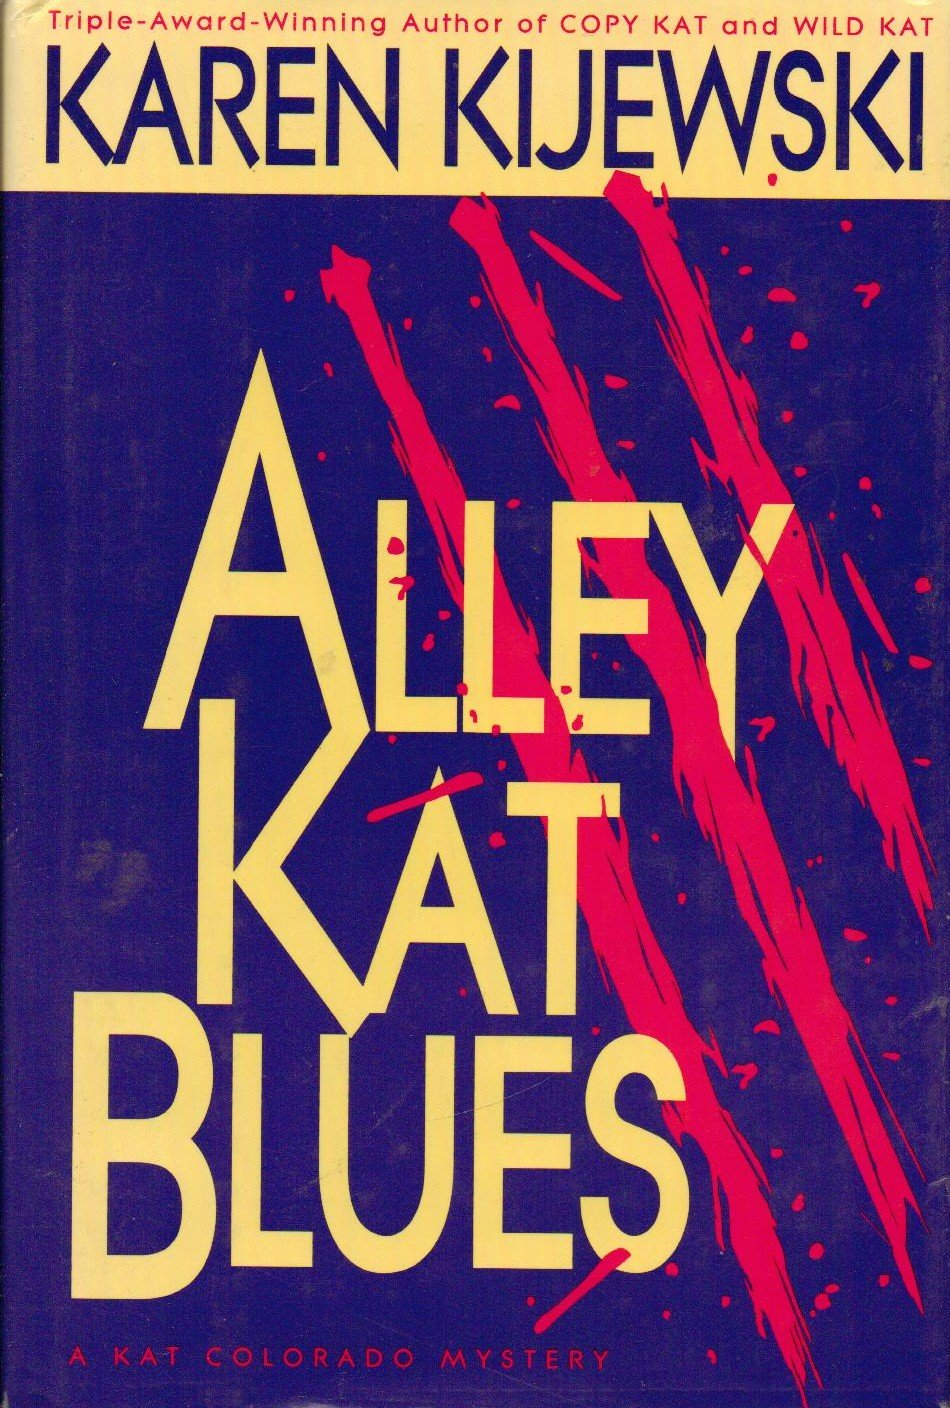 Alley Kat Blues - Karen Kijewski 0385468520